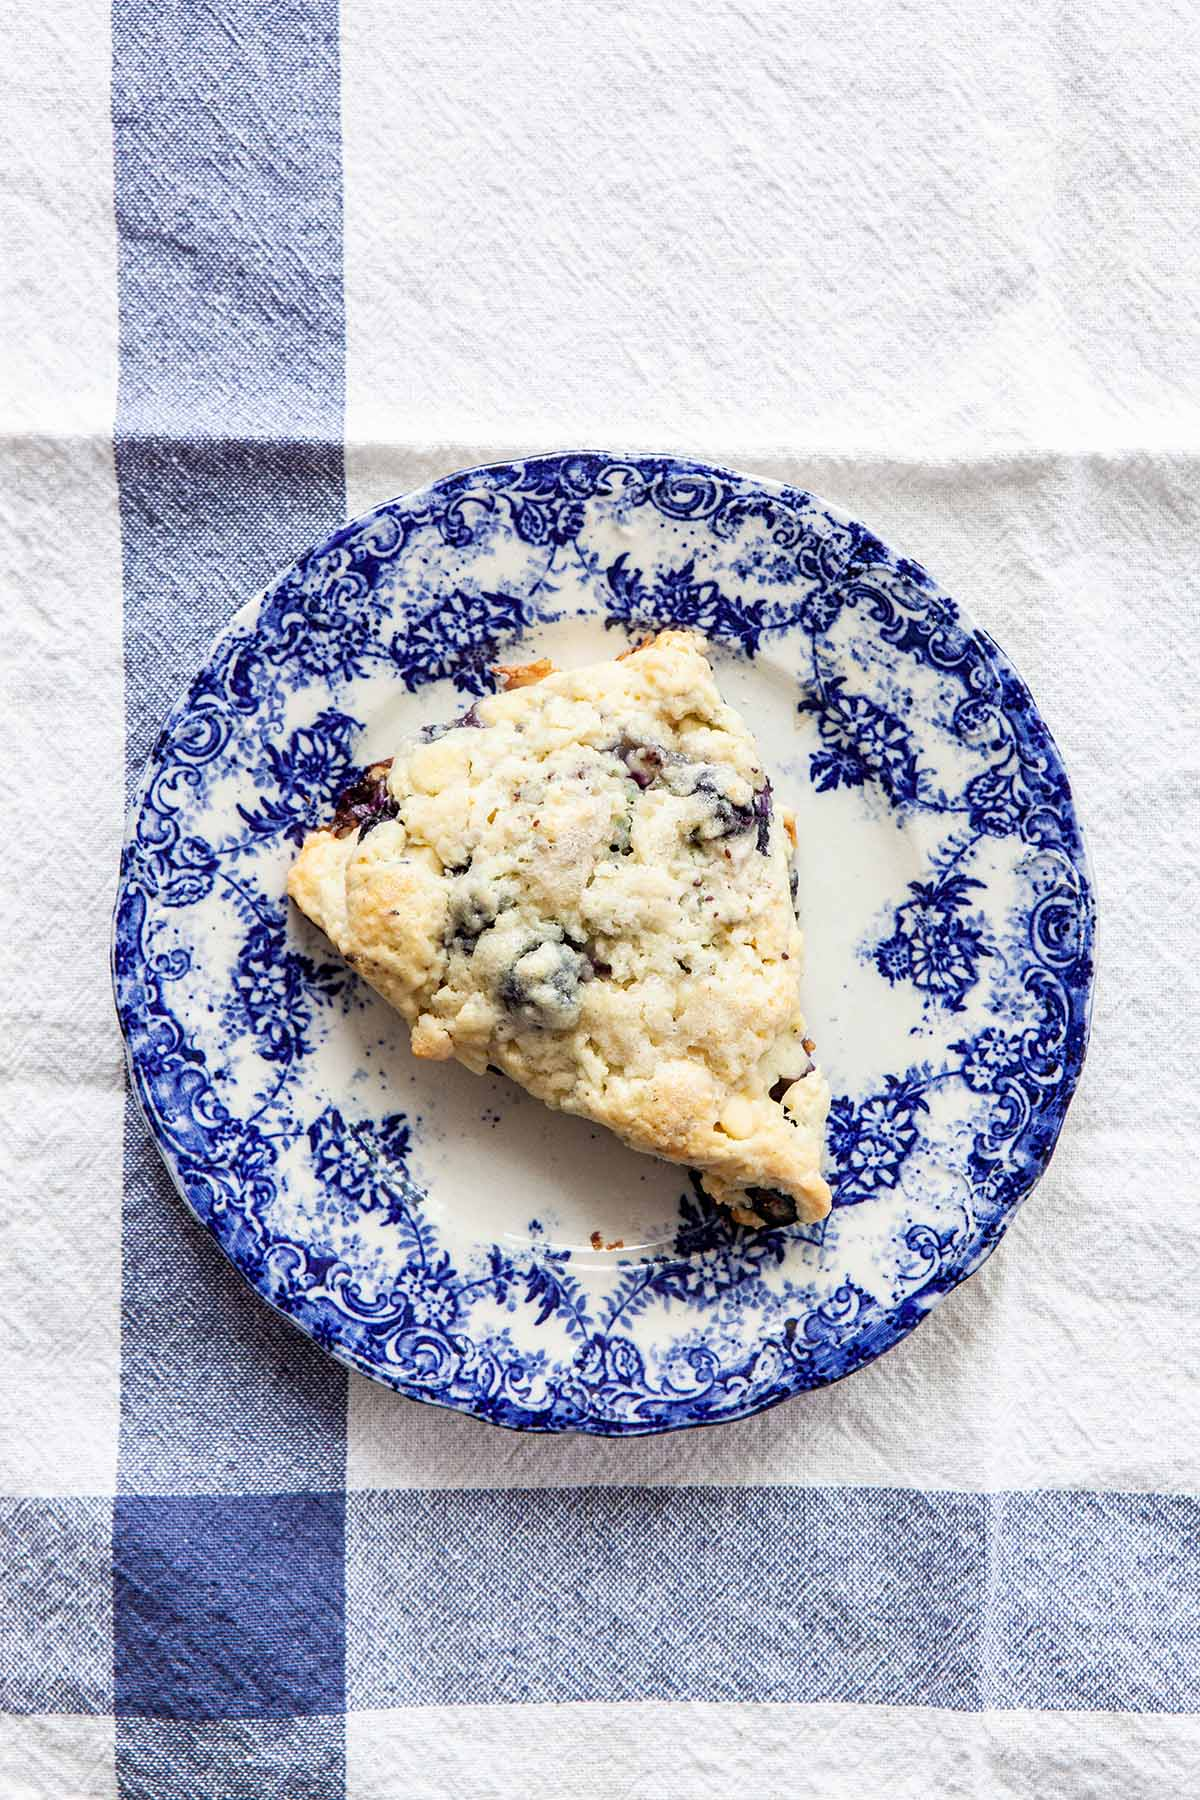 One blueberry white chocolate scone sitting on a bright blue and white plate on a white tablecloth with two blue stripes.